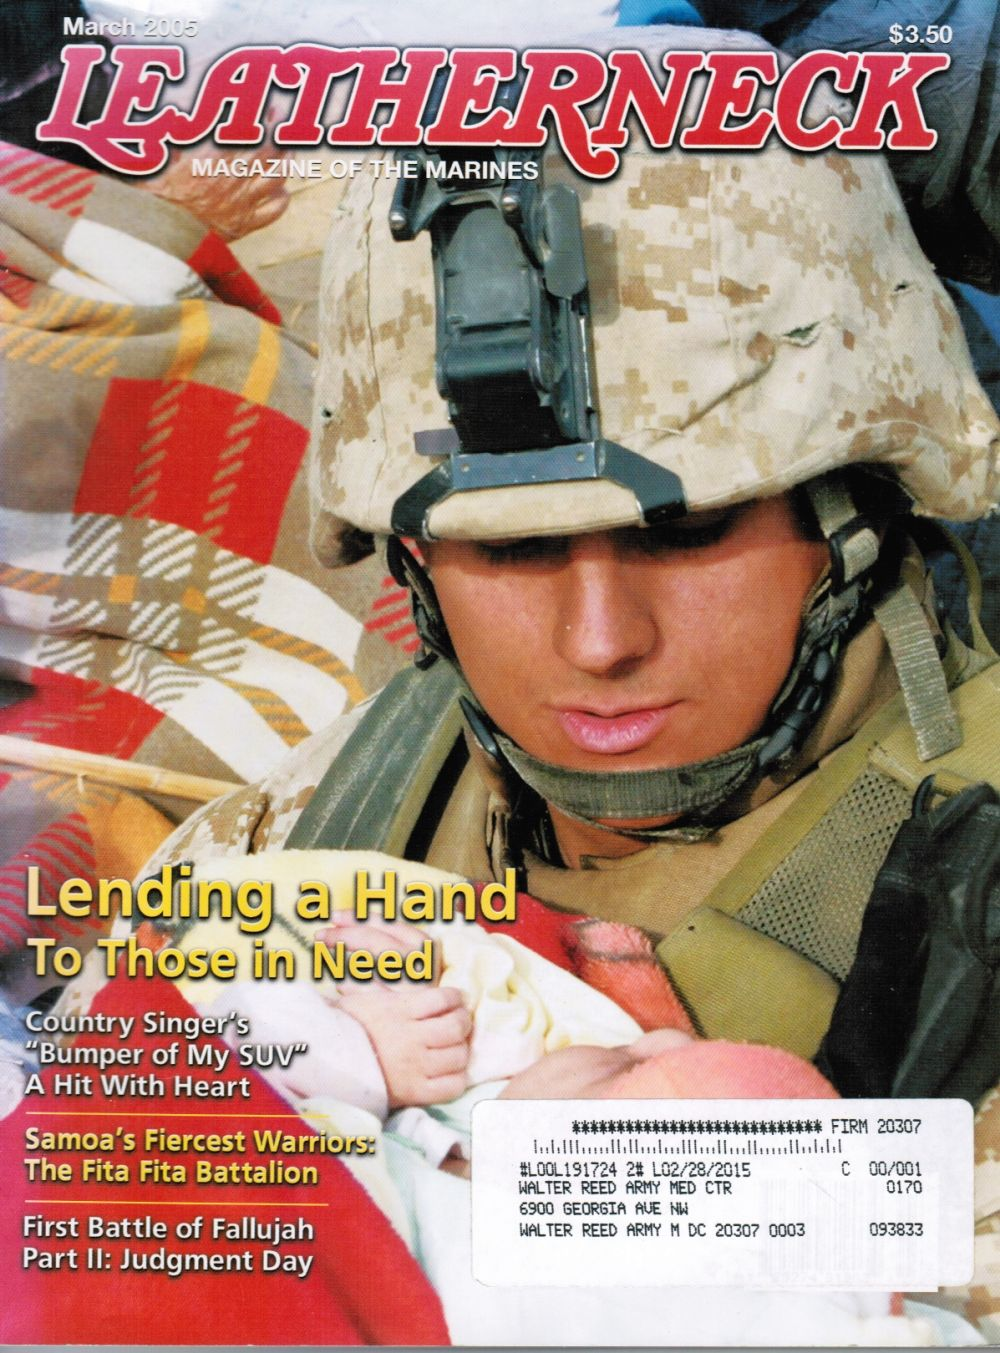 Image for Leatherneck Magazine of the Marines George W. Bush, Samoan Battalion, Chely Wright